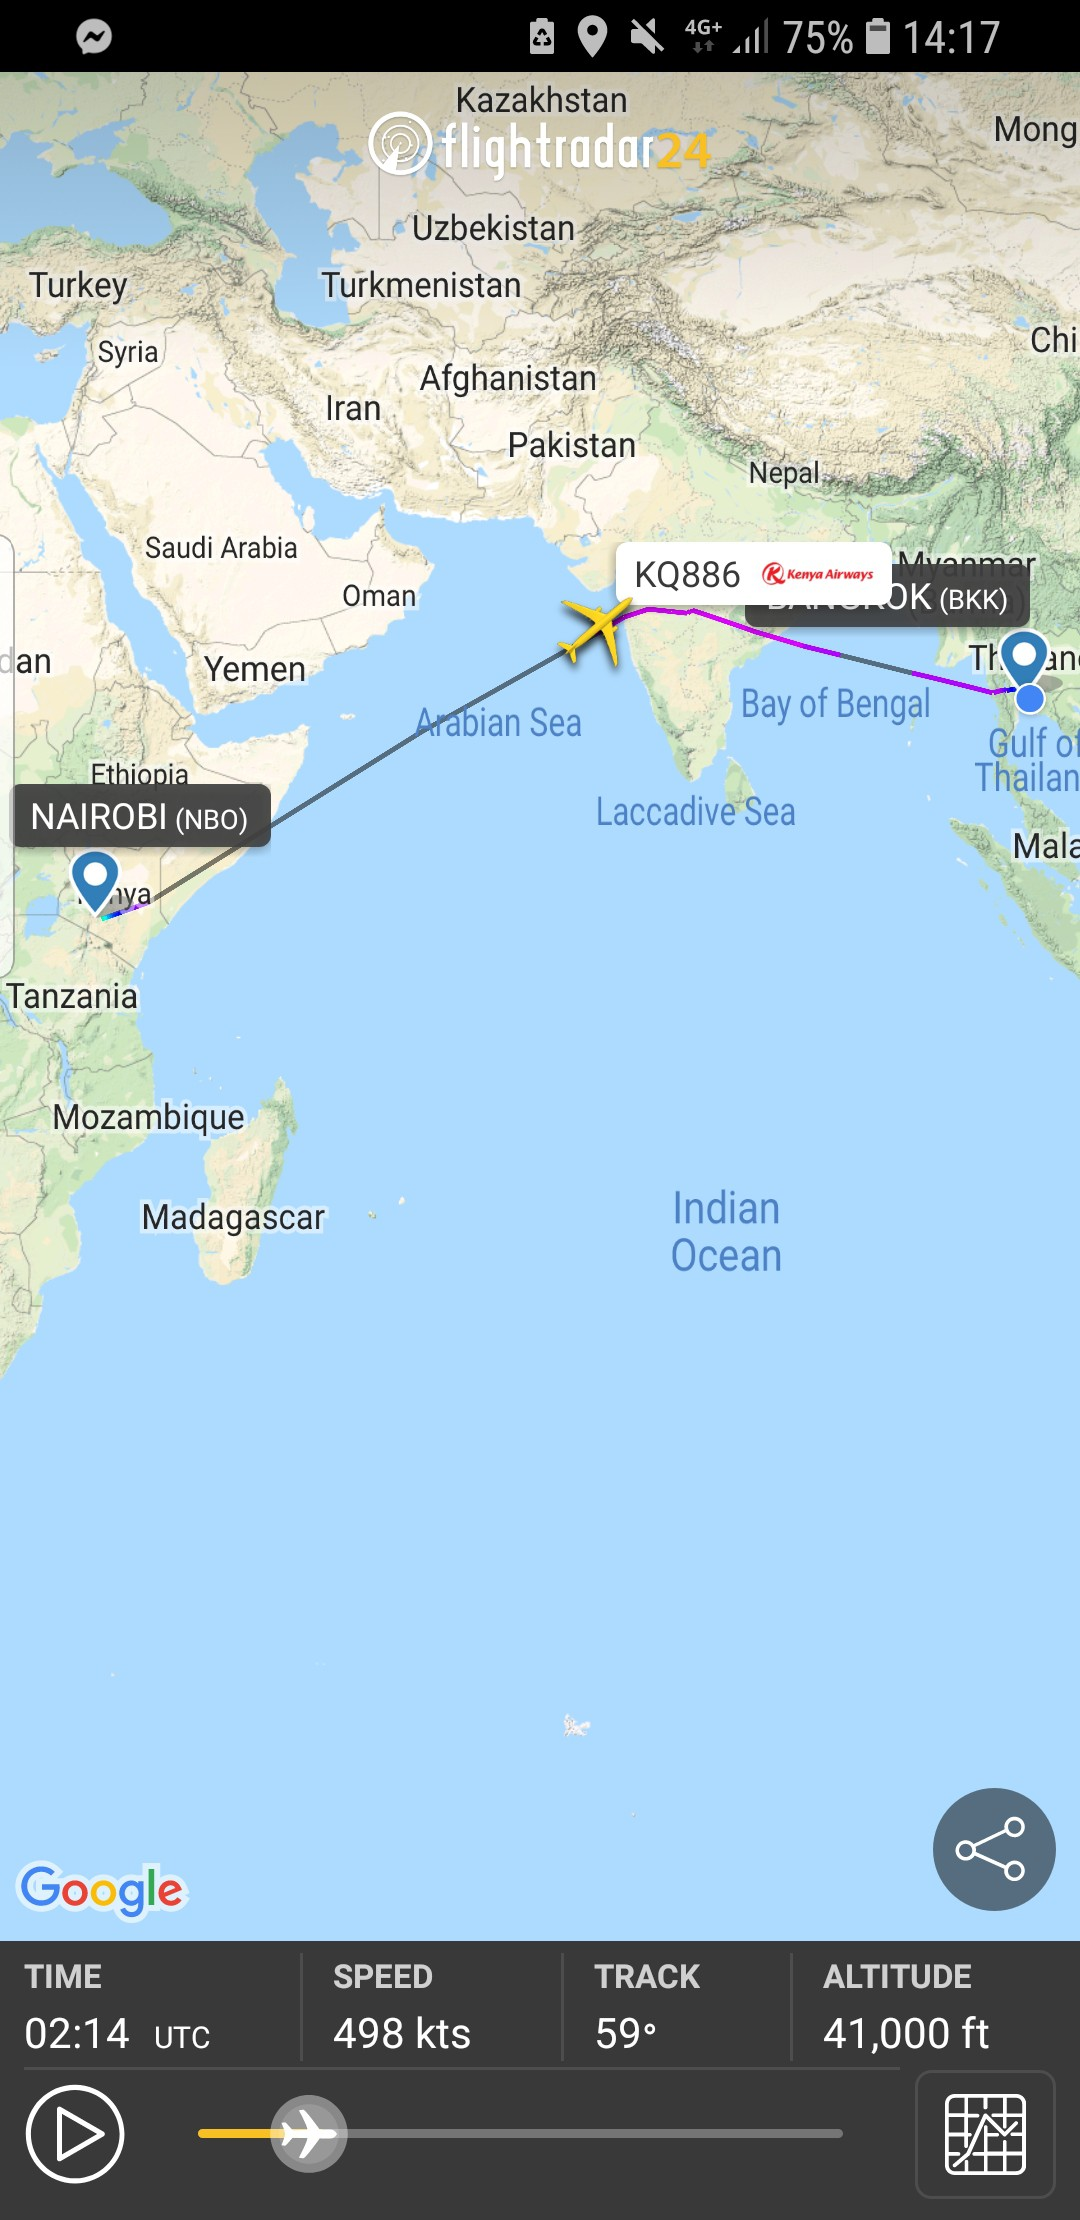 photo screenshot_20190211-141727_flightradar24